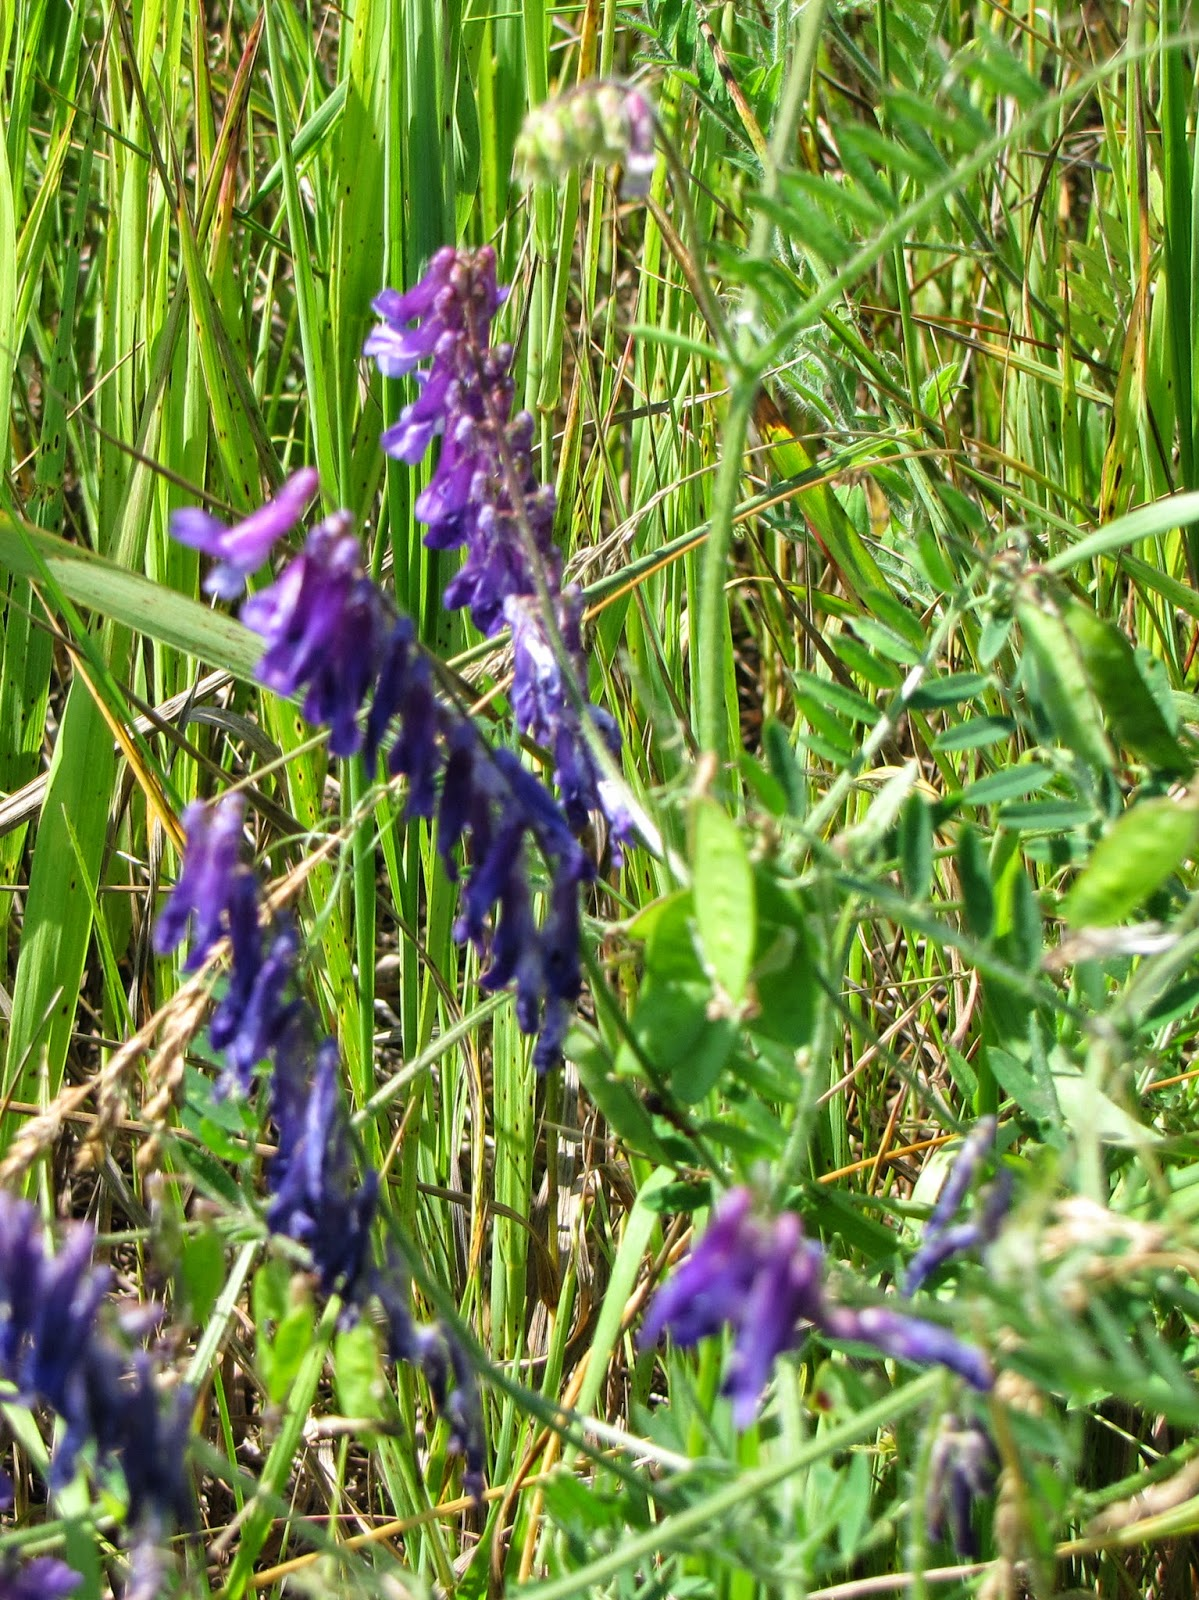 hairy vetch blossoms